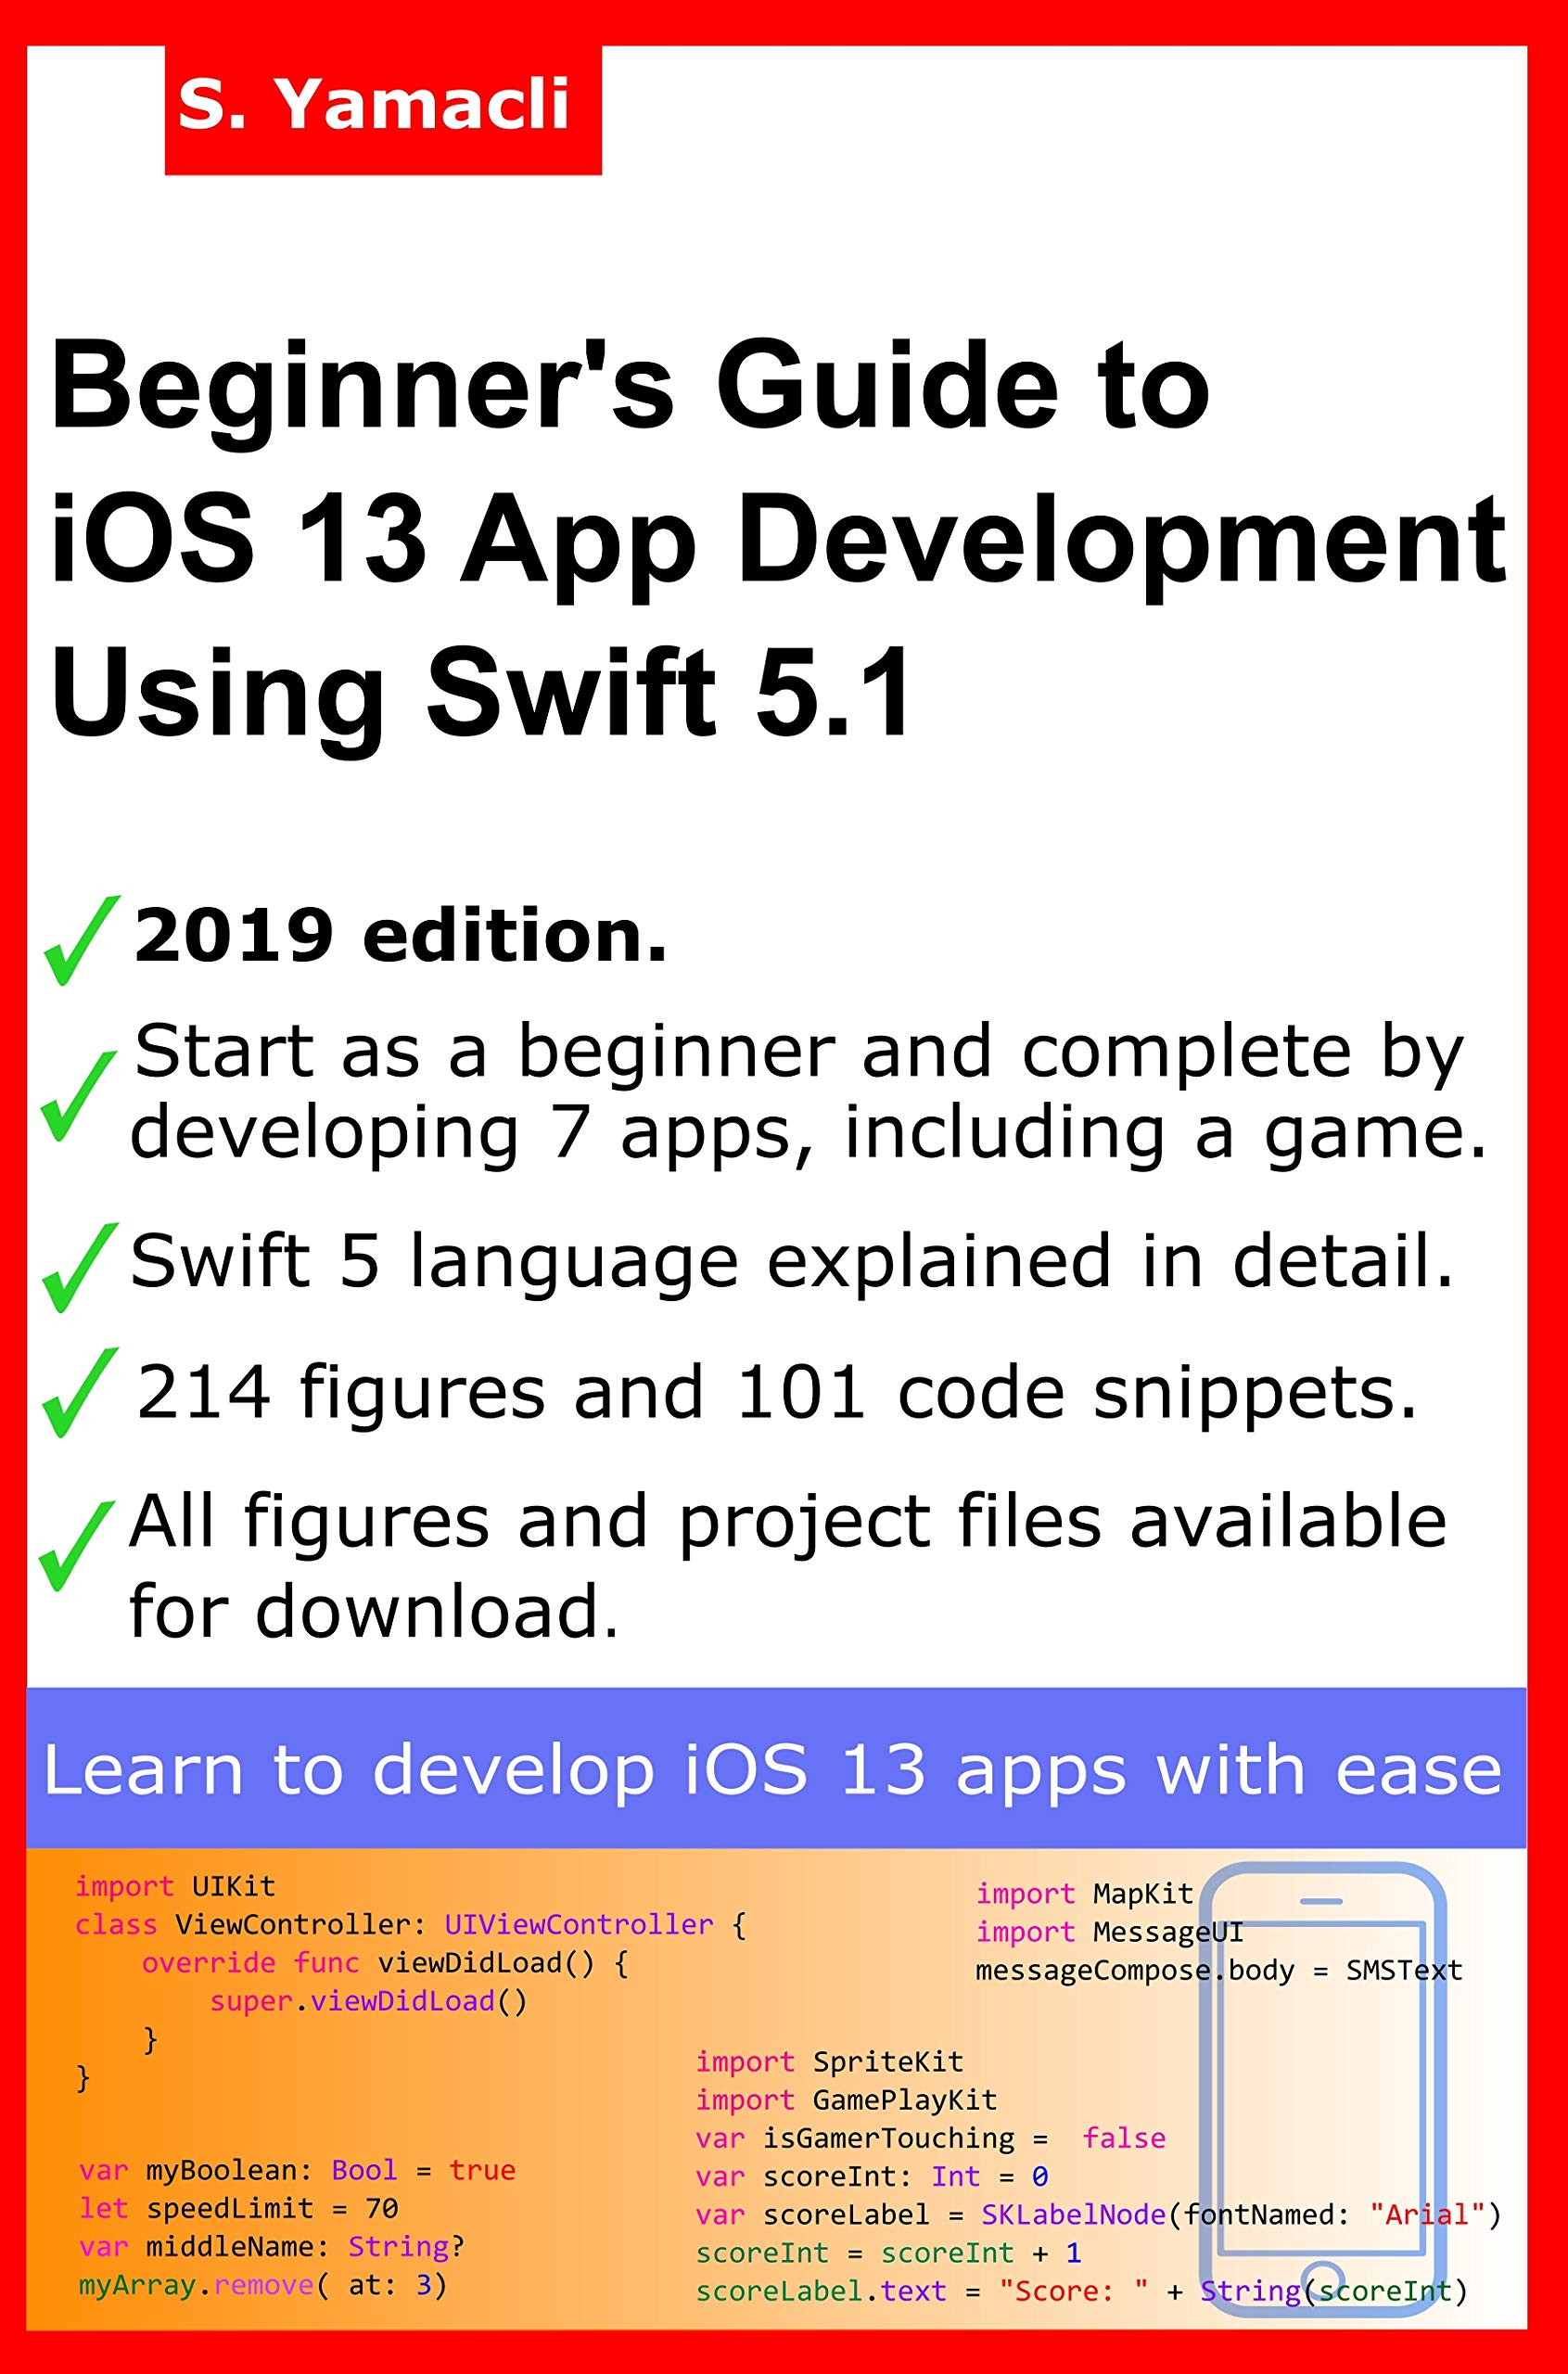 Image OfBeginner's Guide To IOS 13 App Development Using Swift 5.1: Xcode, Swift And App Design Fundamentals (English Edition)